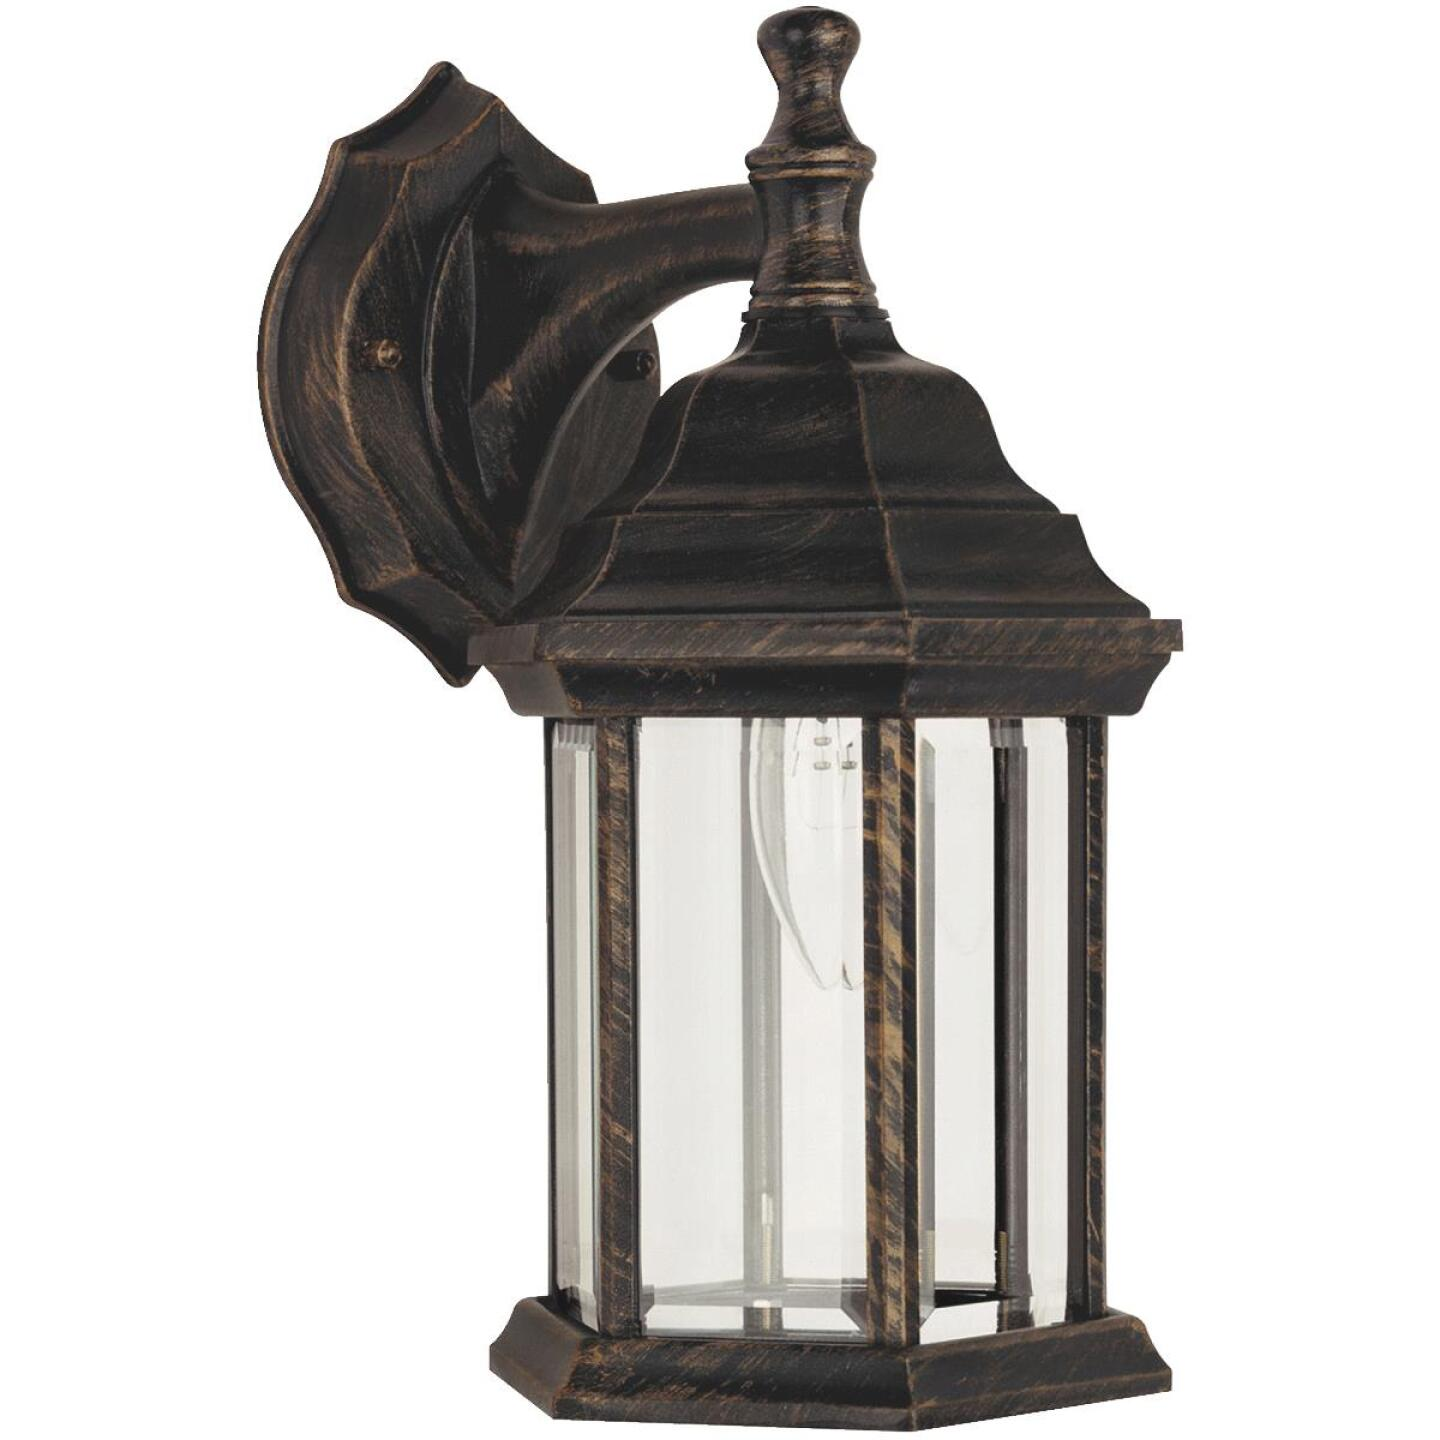 Home Impressions Antique Black w/Gold Highlights Incandescent Type A Outdoor Wall Light Fixture Image 1